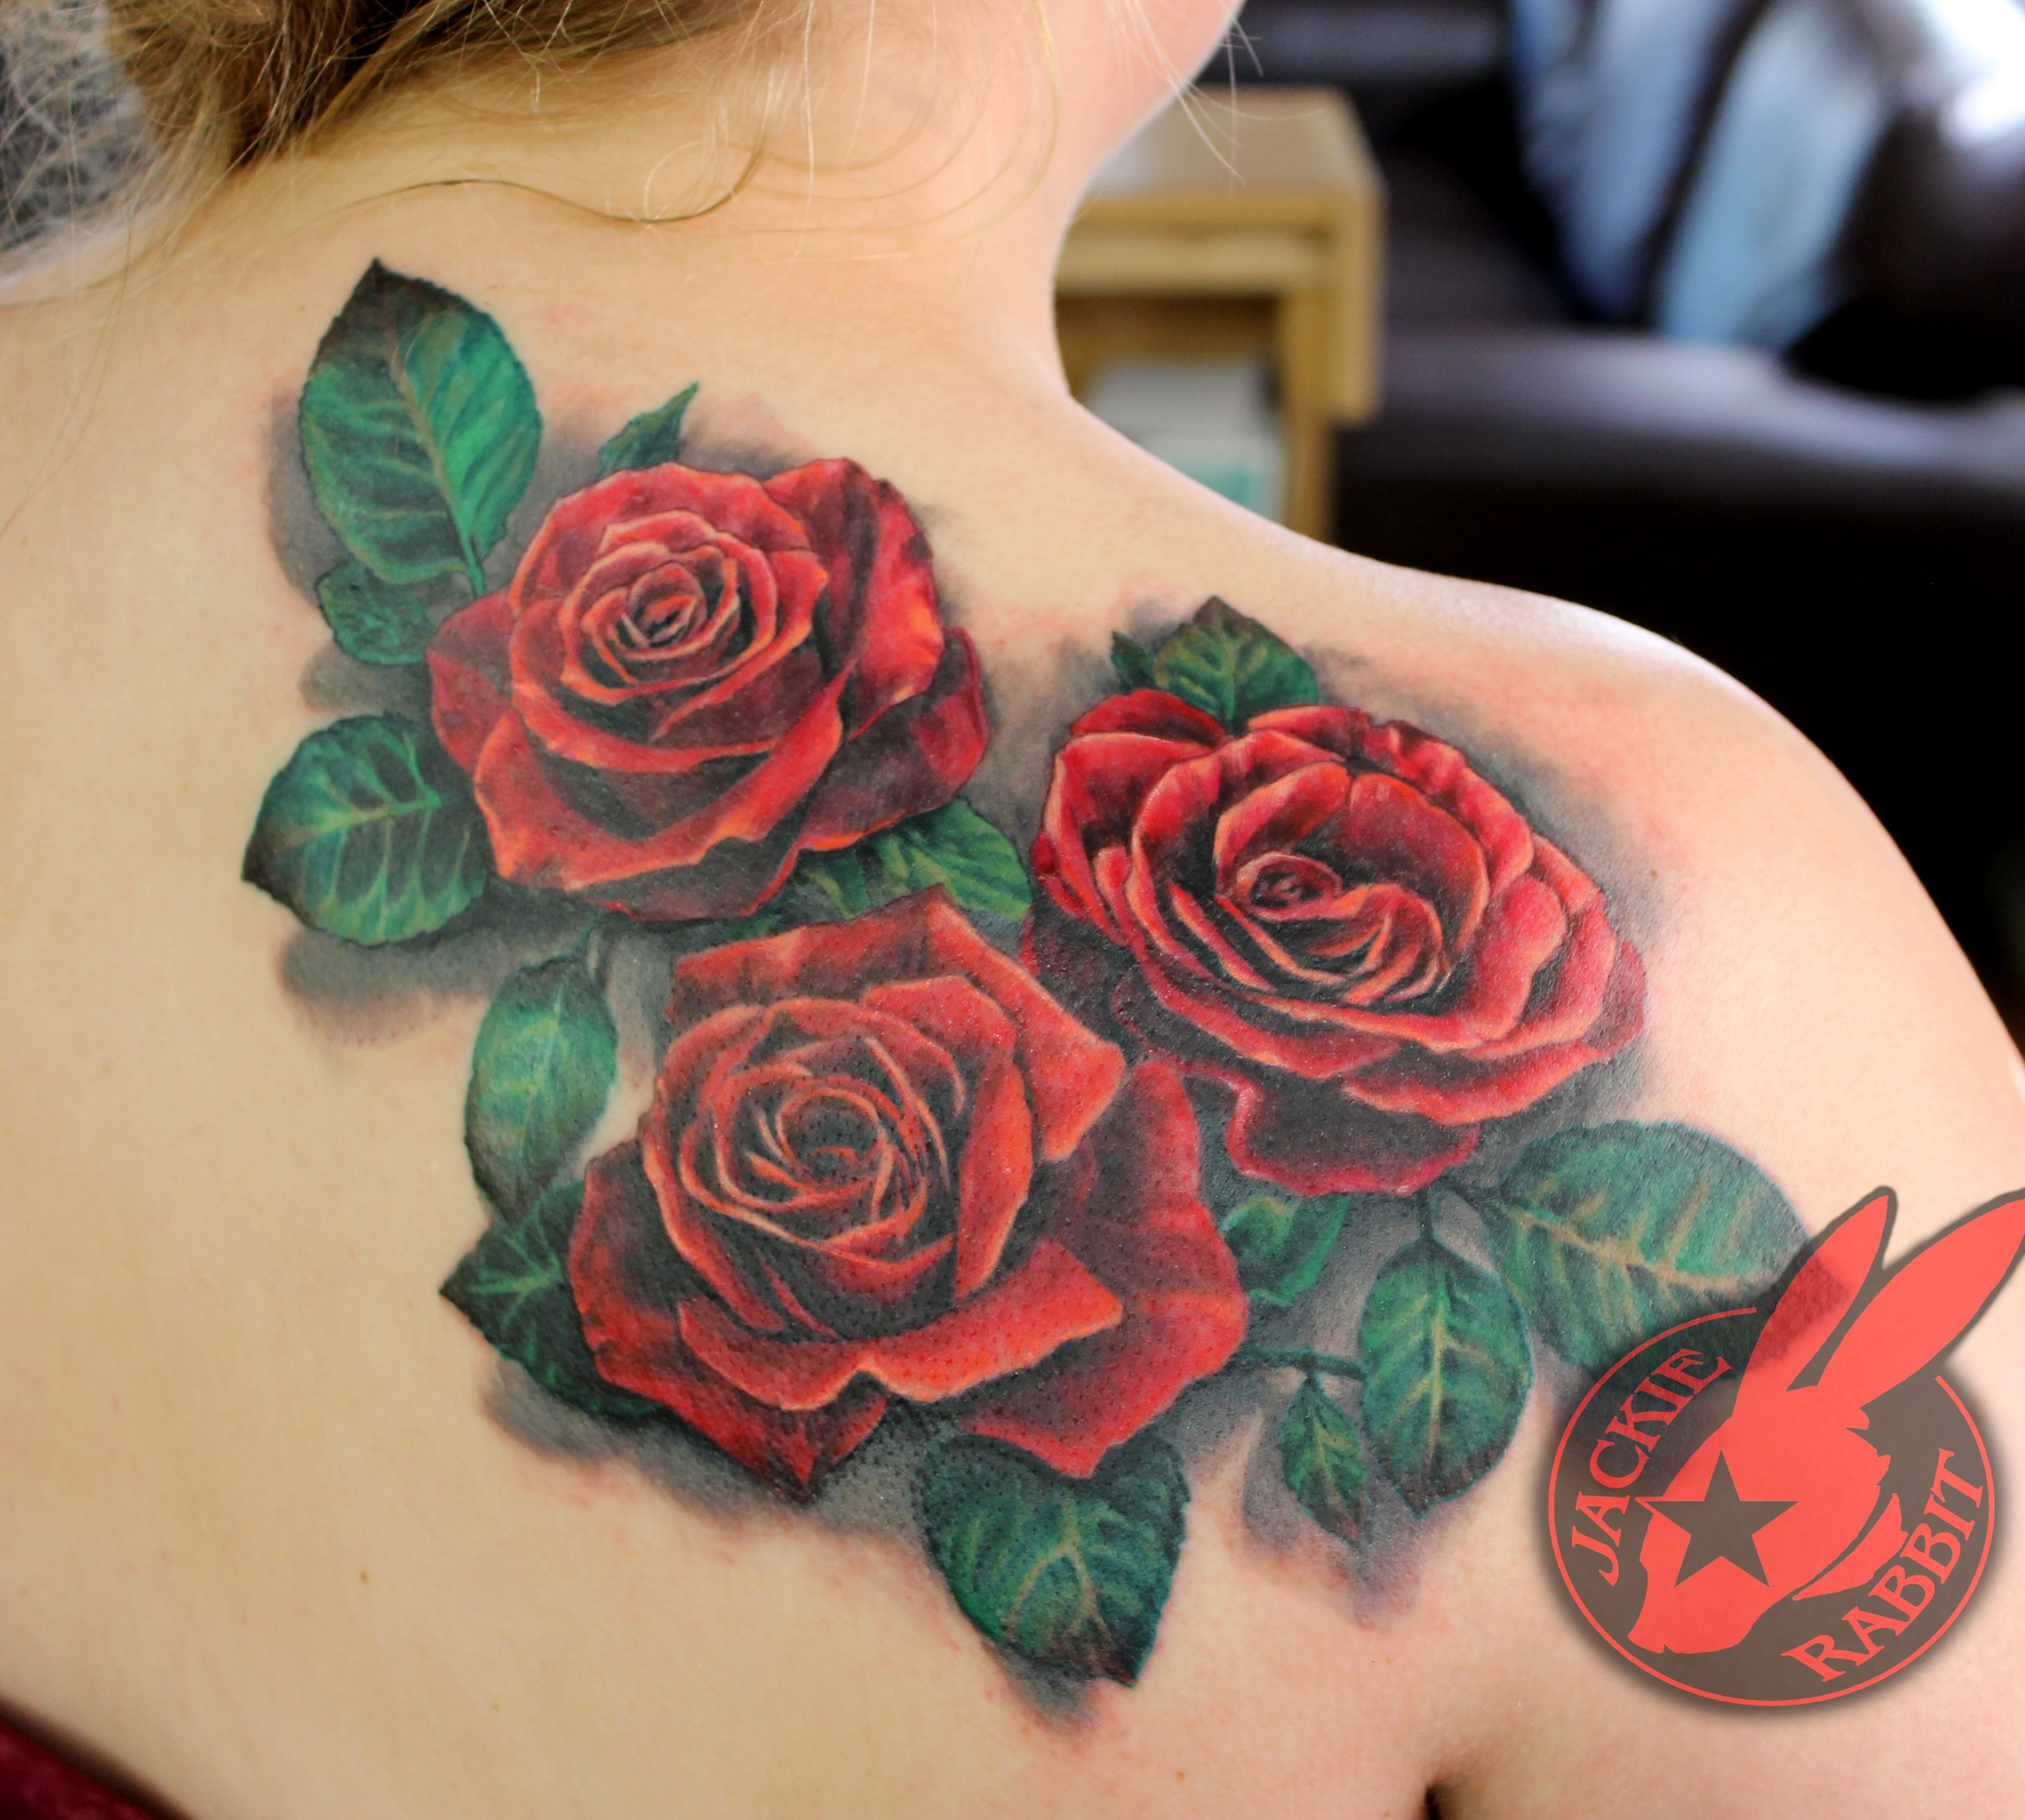 Red Rose Realistic 3d Flower Color Back Tattoo By Jackie Rabbit Custom Tattoo By Jackie Rabbit Eye Of Jade Tattoo 6165 Skywa Rose Tattoos Back Tattoo Tattoos